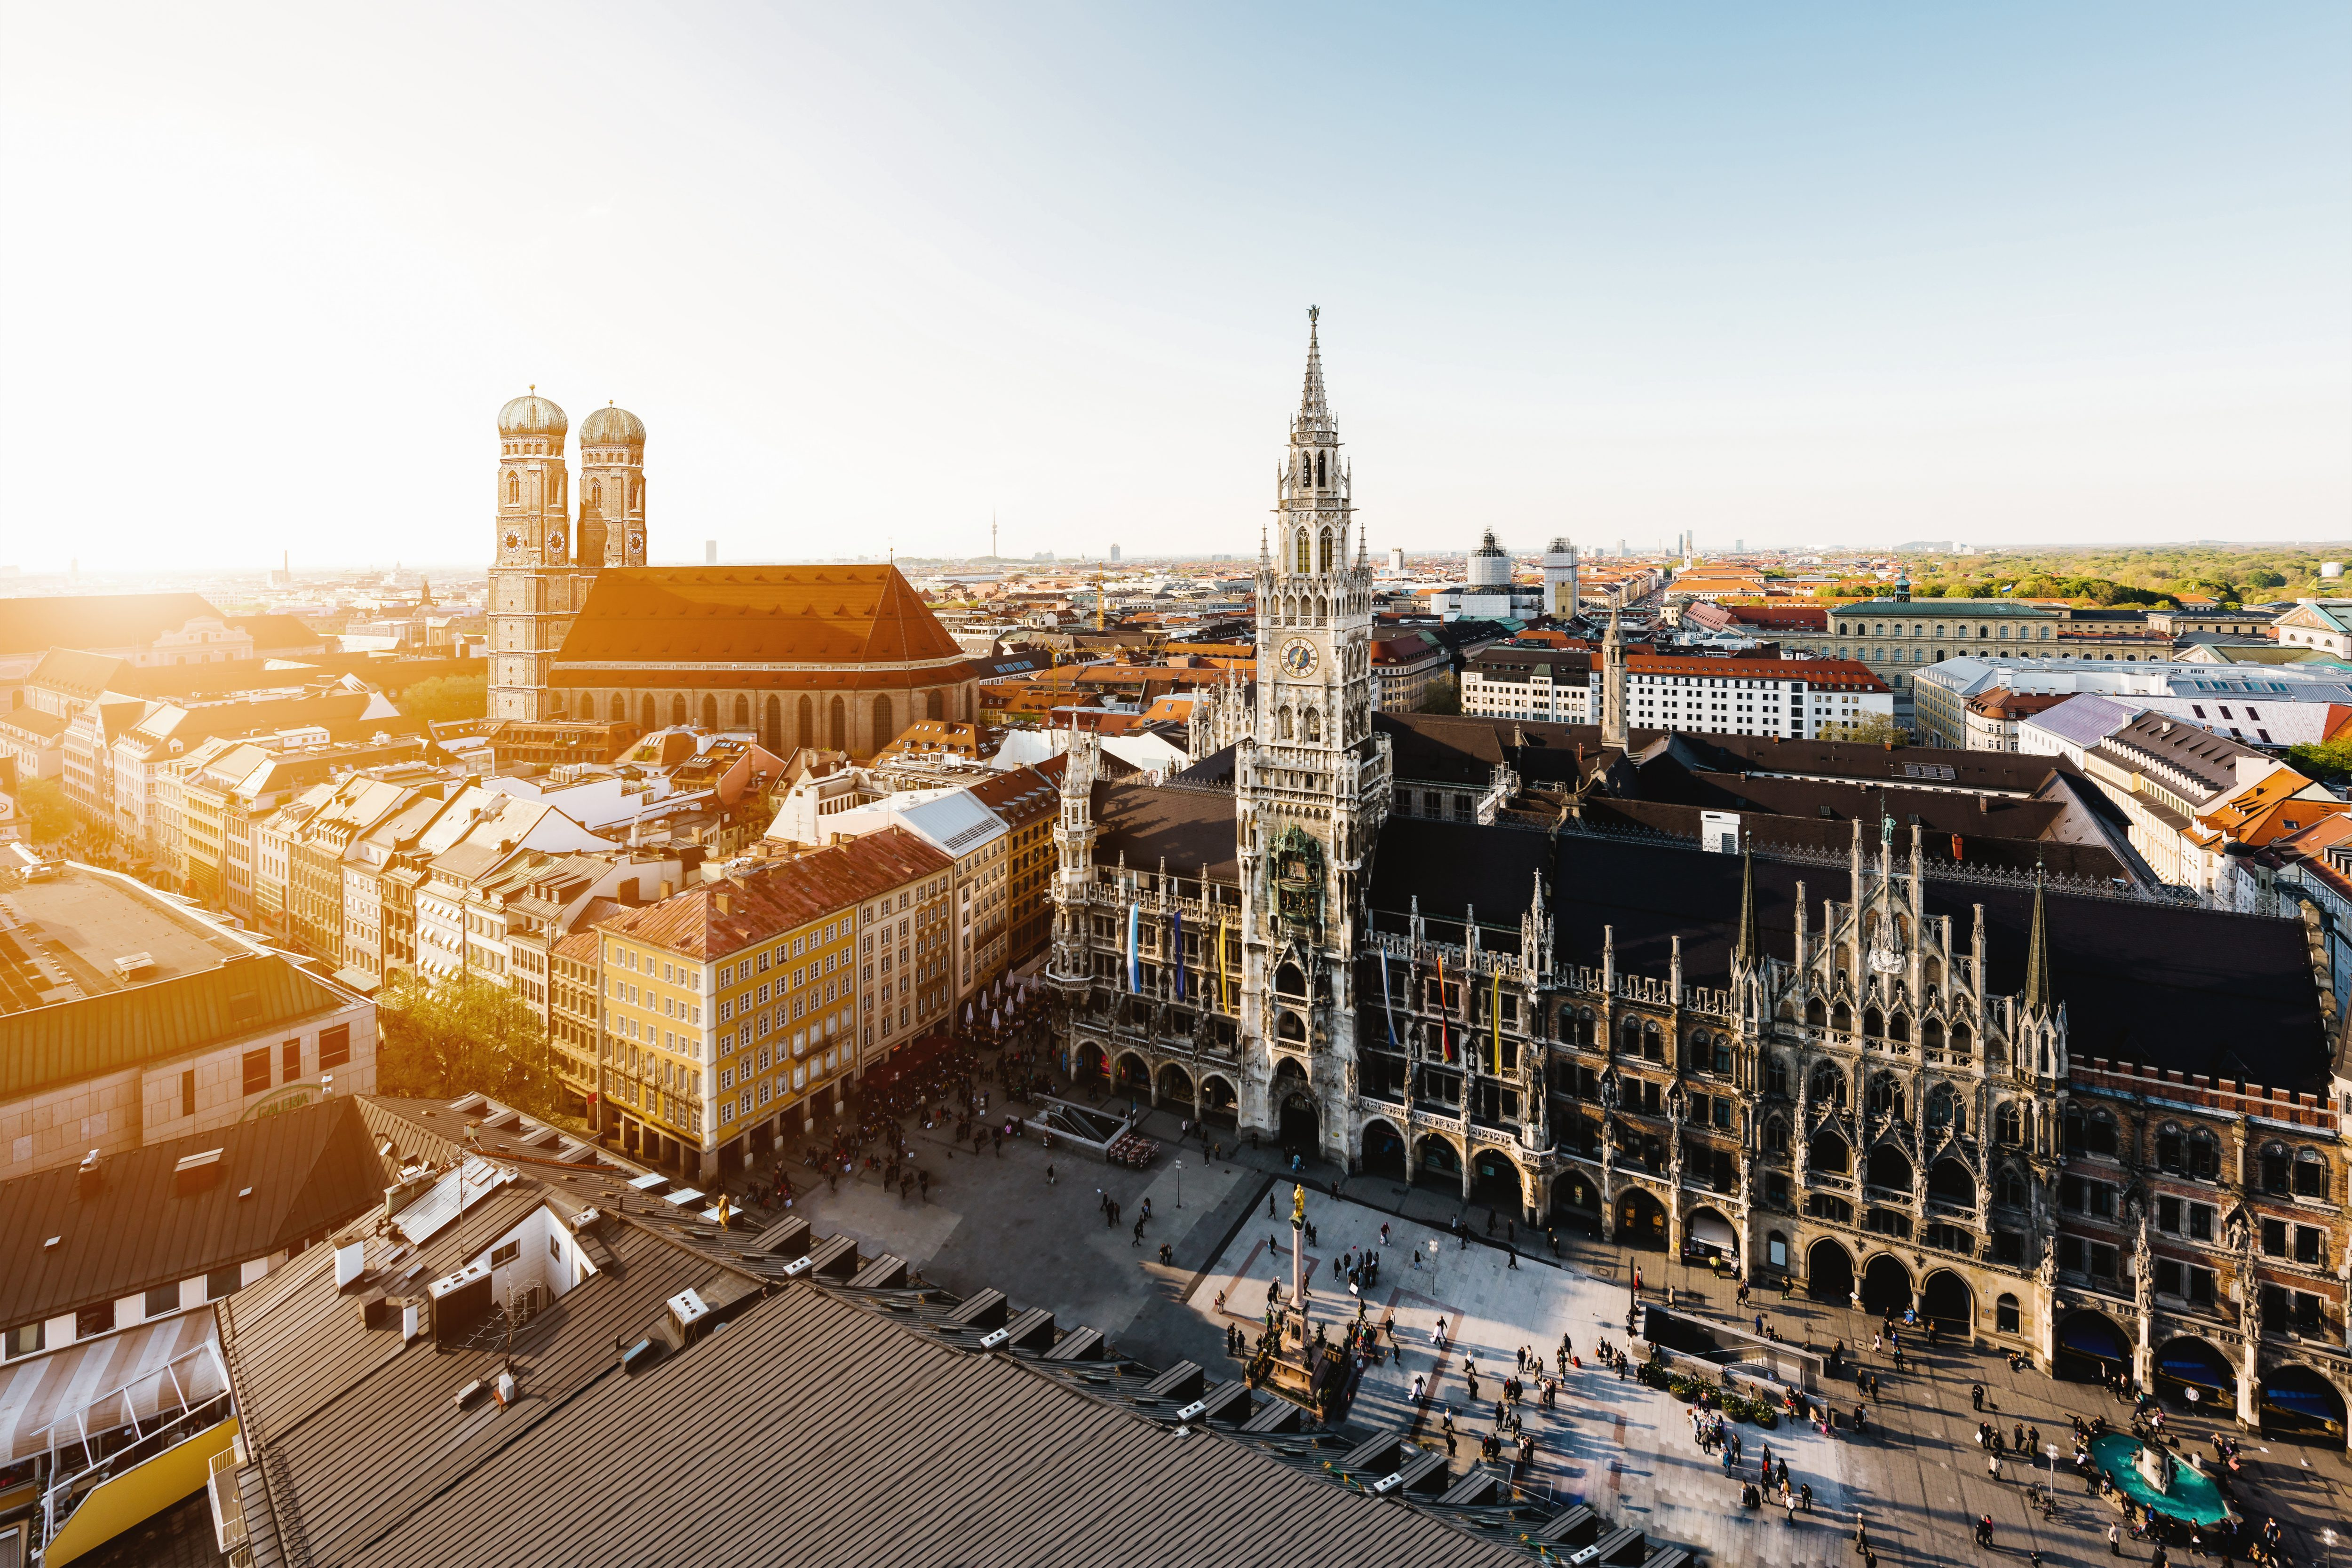 View of the city of Munich at sunrise